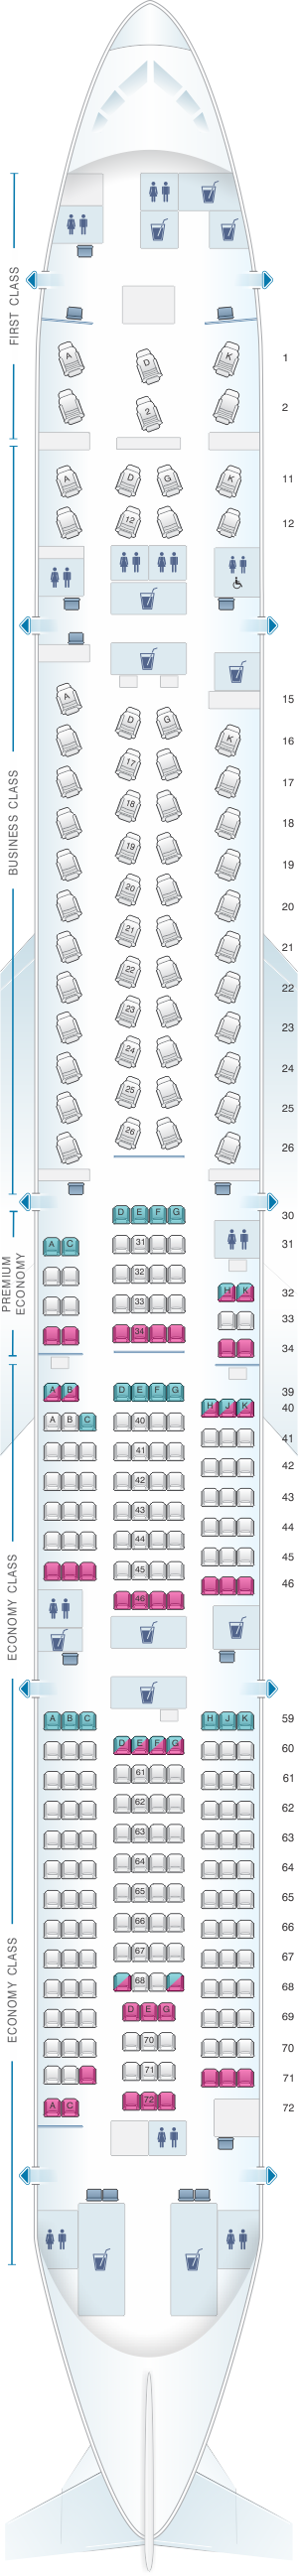 Seat map for Cathay Pacific Airways Boeing B777 300 (77A)